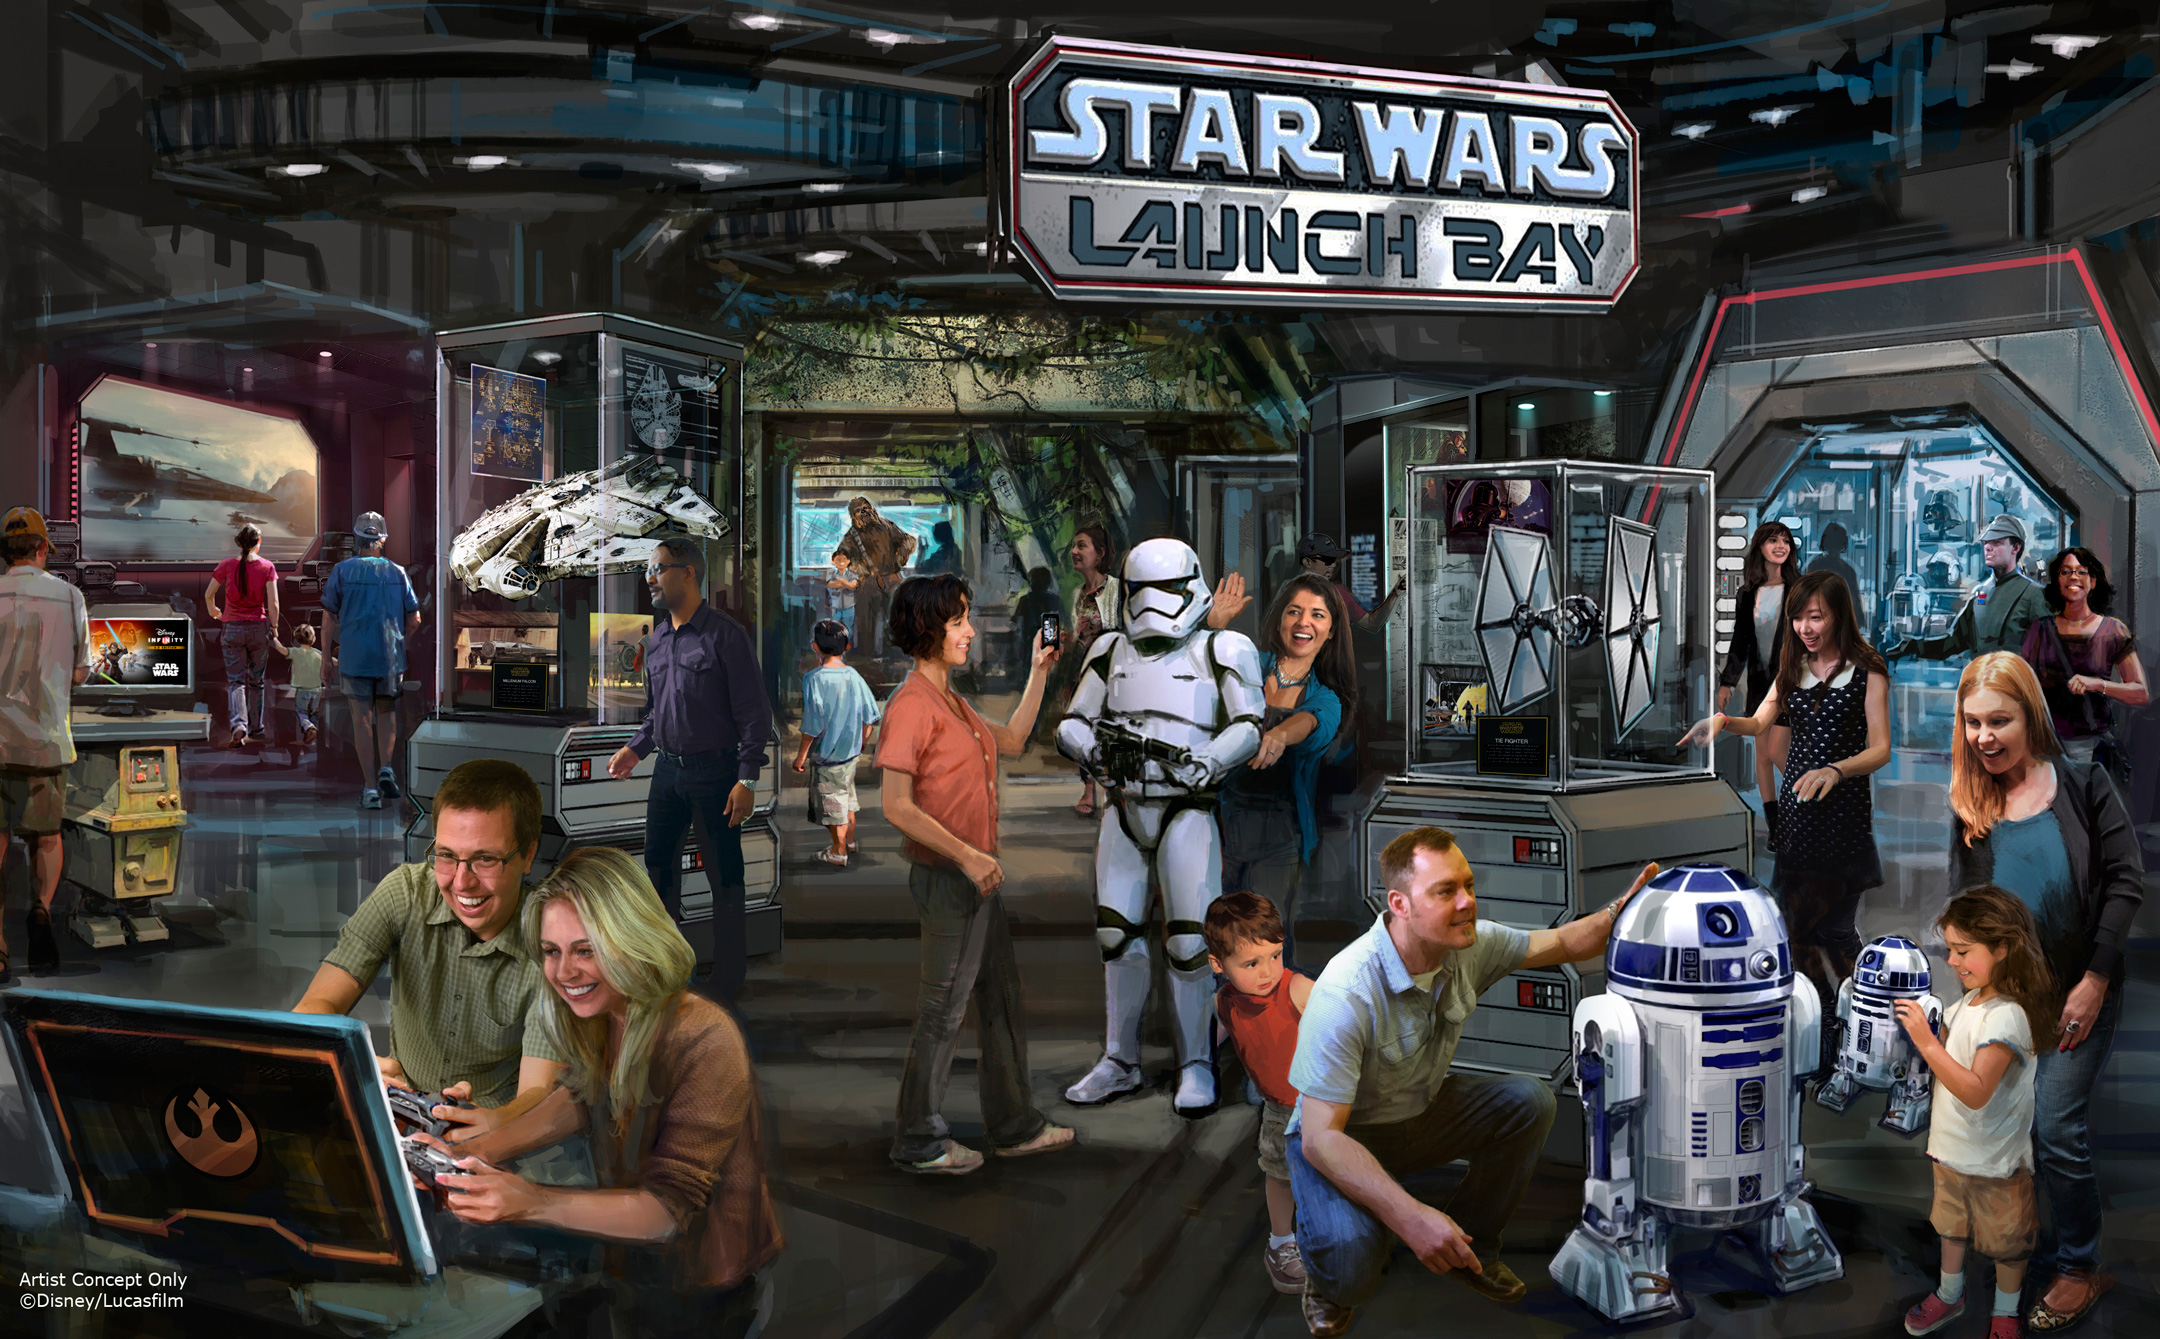 Star Wars Launch Bay: Coming to a Disney park near Orlando and Los Angeles soon!